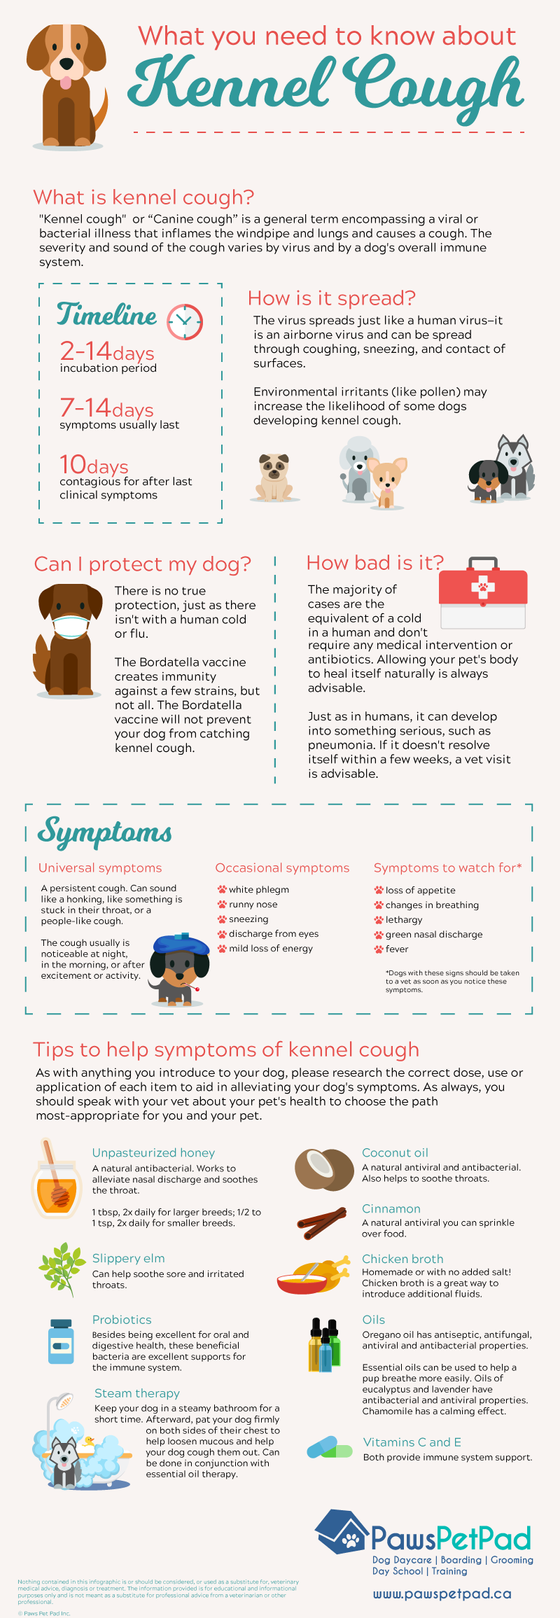 Kennel Cough and your dog - what you should know